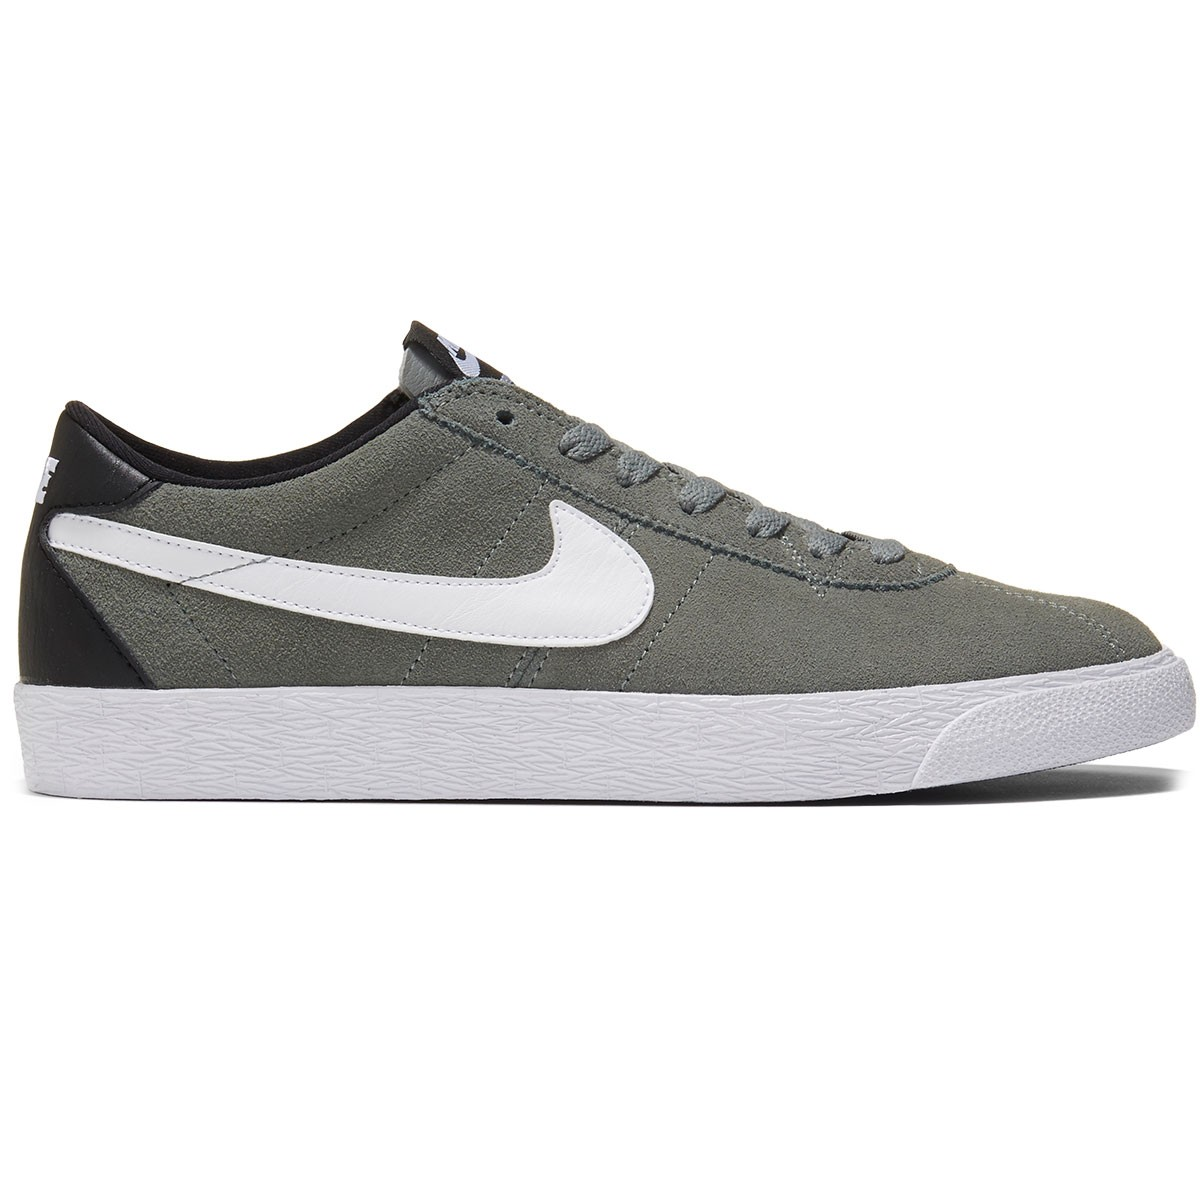 detailed images website for discount official shop Nike SB Zoom Bruin Shoes